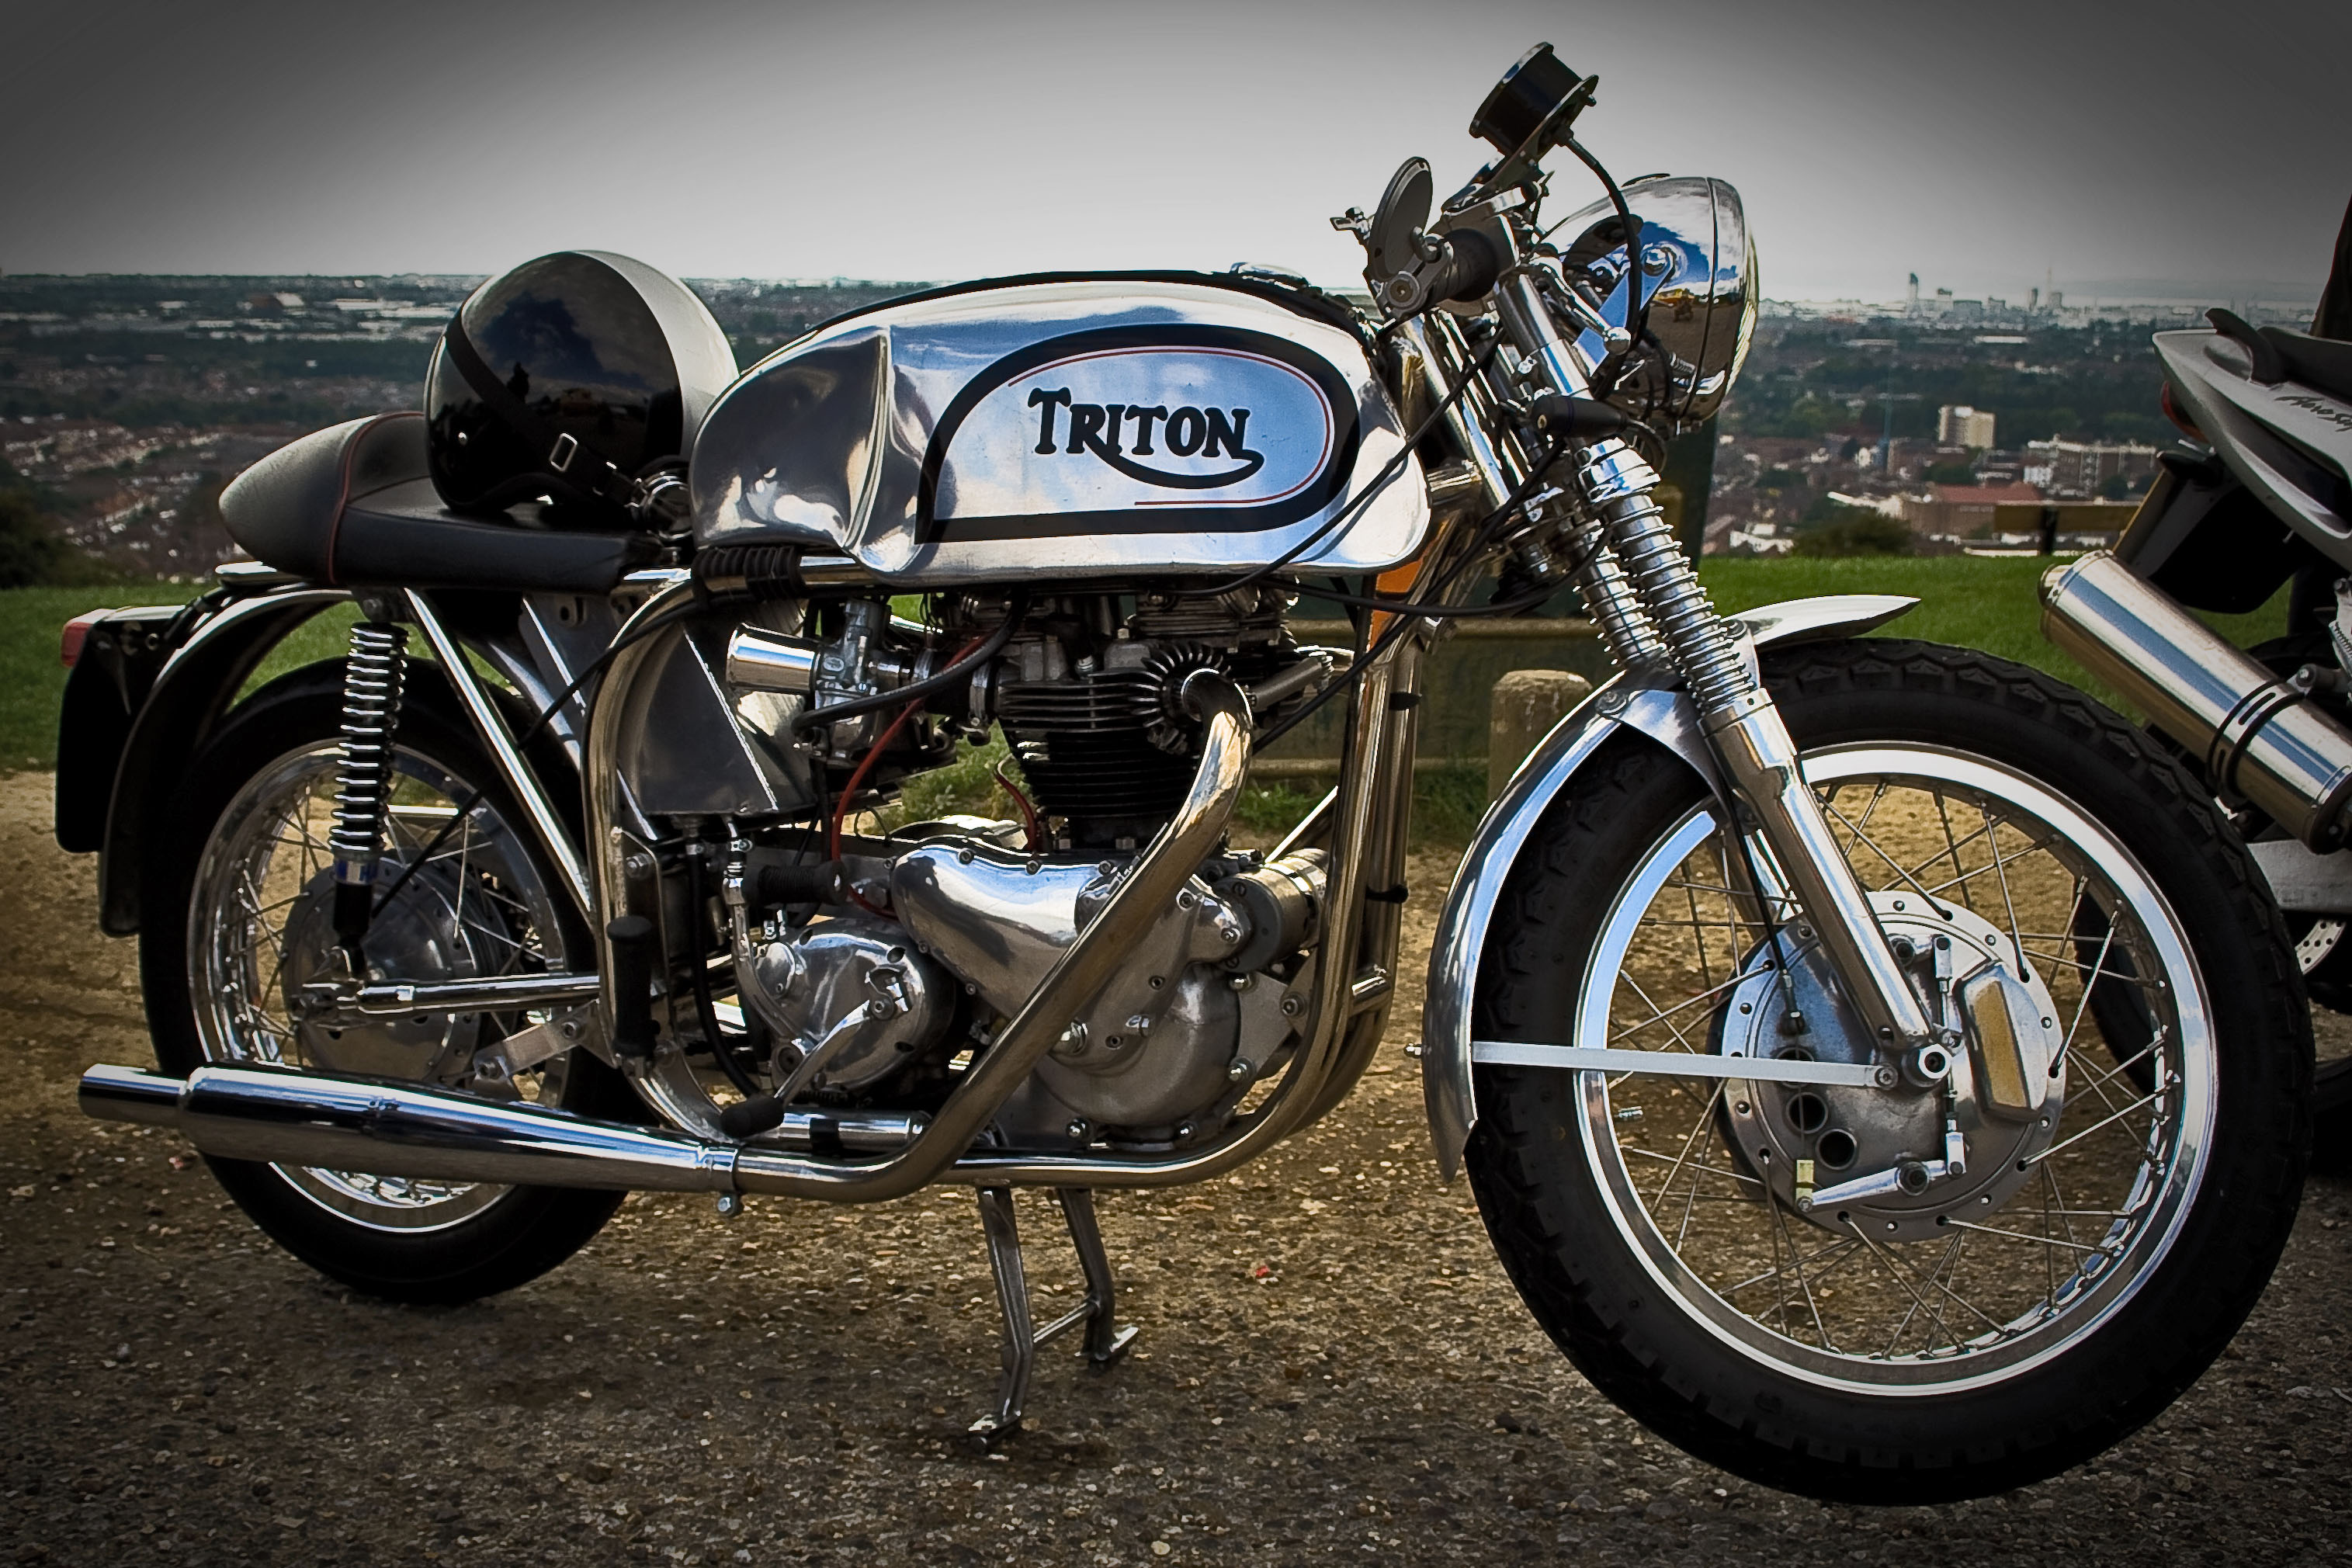 File triton norton triumph motorcycle with polished frame and tank